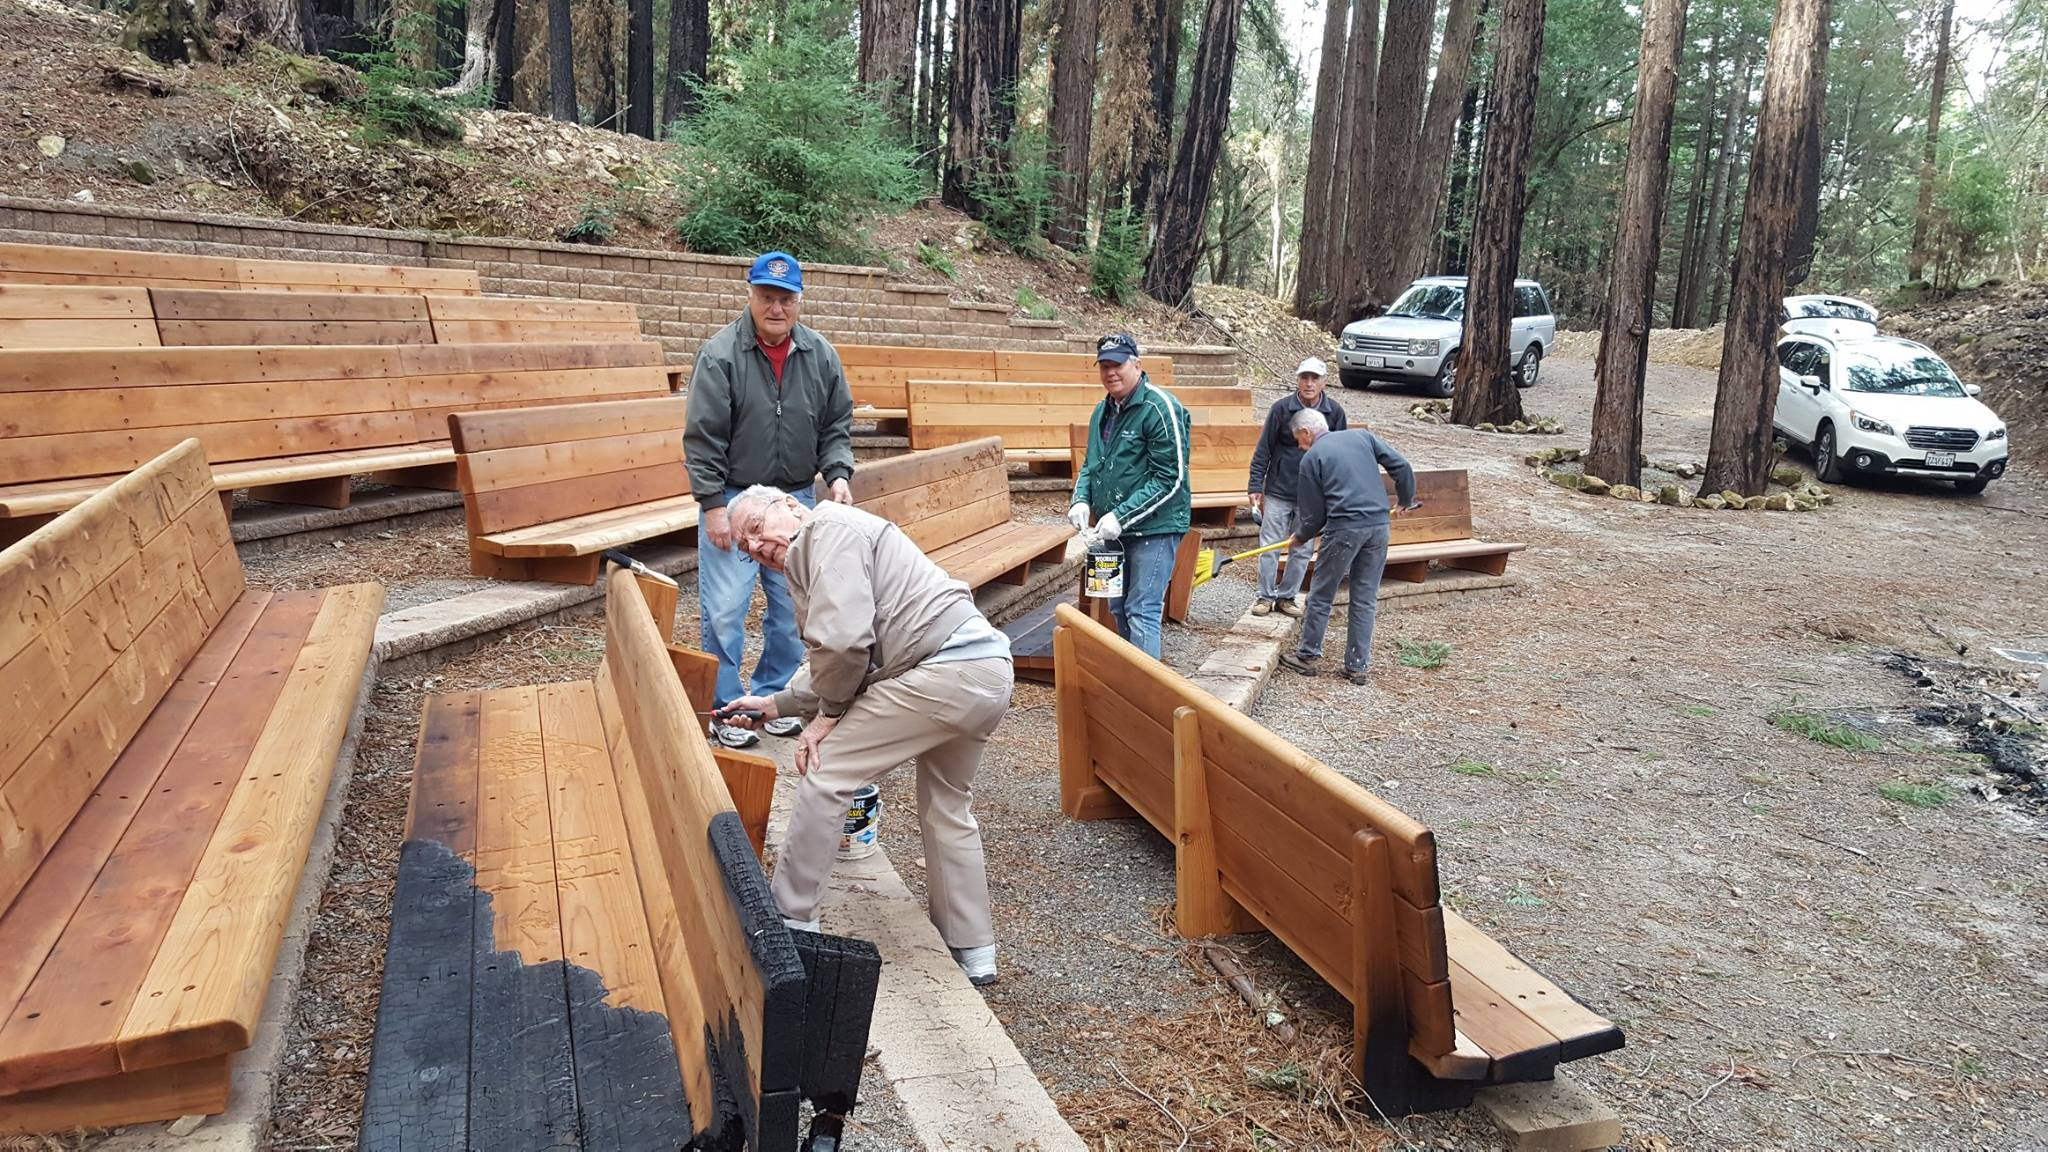 Our friends from the Napa Kiwanis Club put a protective coating on the benches in the Redwood Grove Theater to prevent rot. Some of the benches are charred, a reminder of the October fires in Napa.